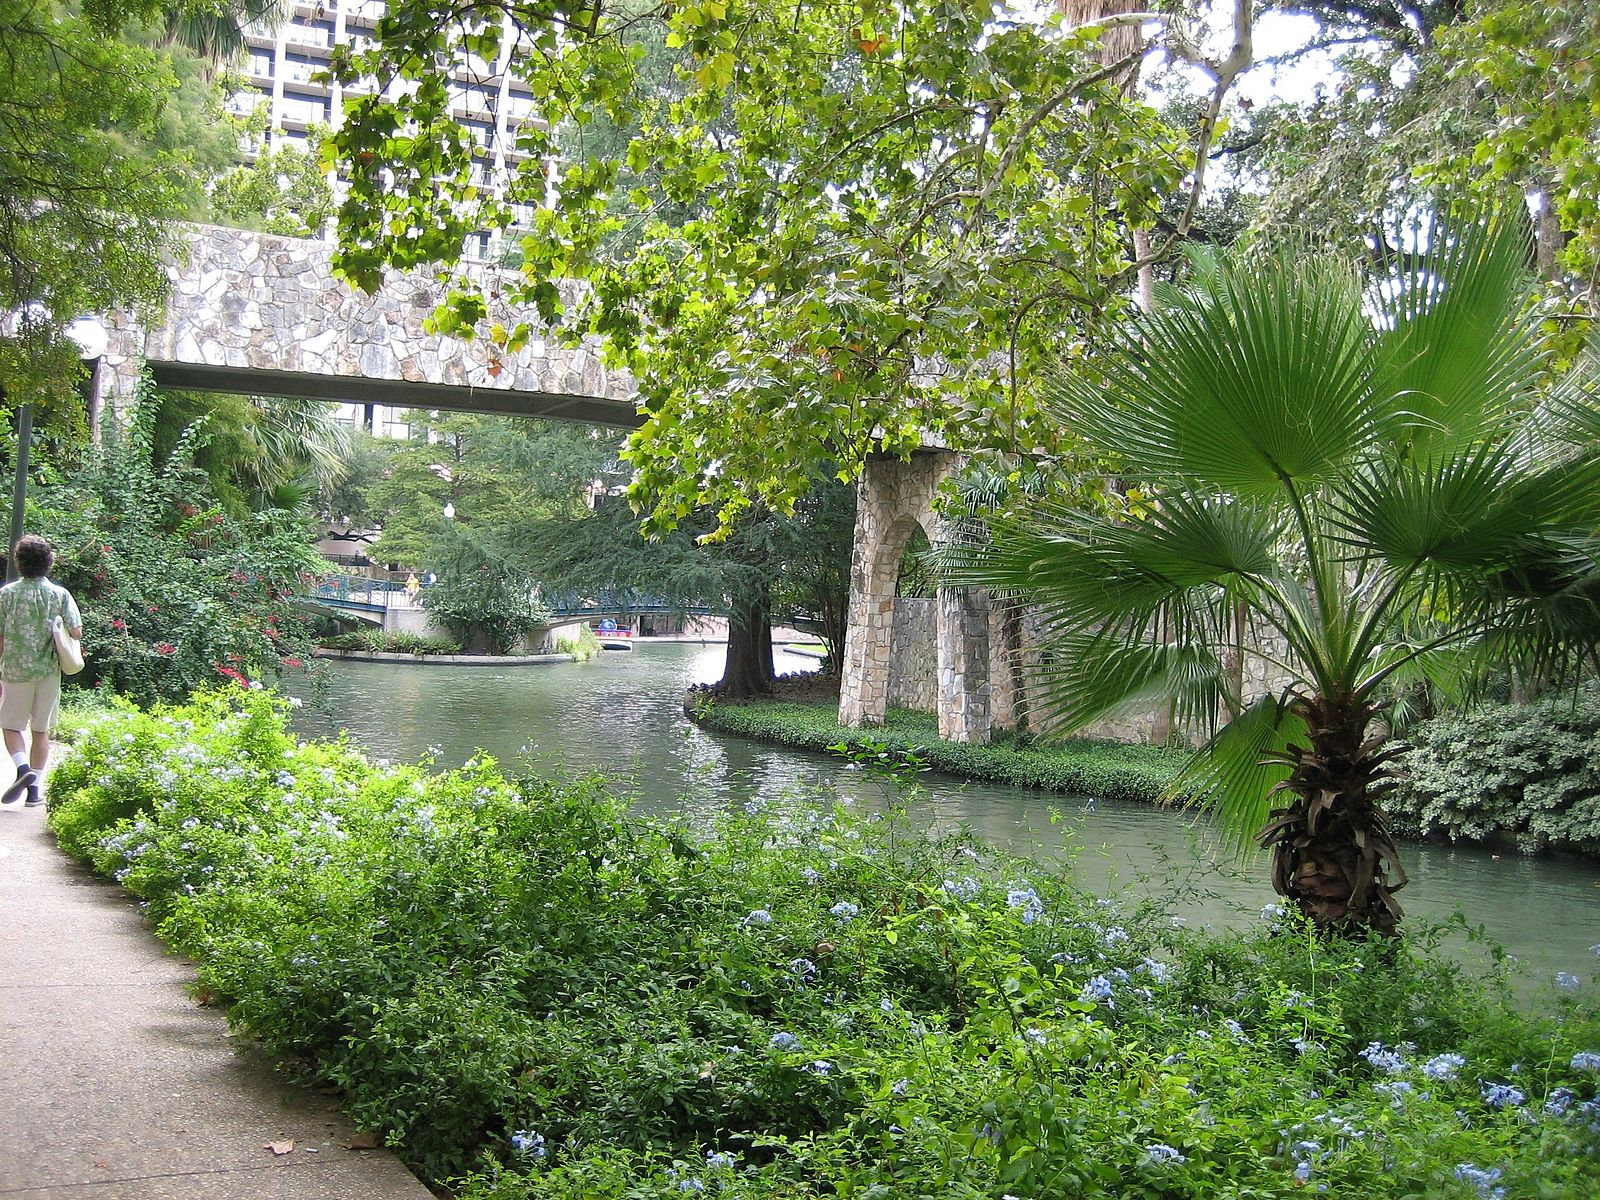 Riverwalk / foliage